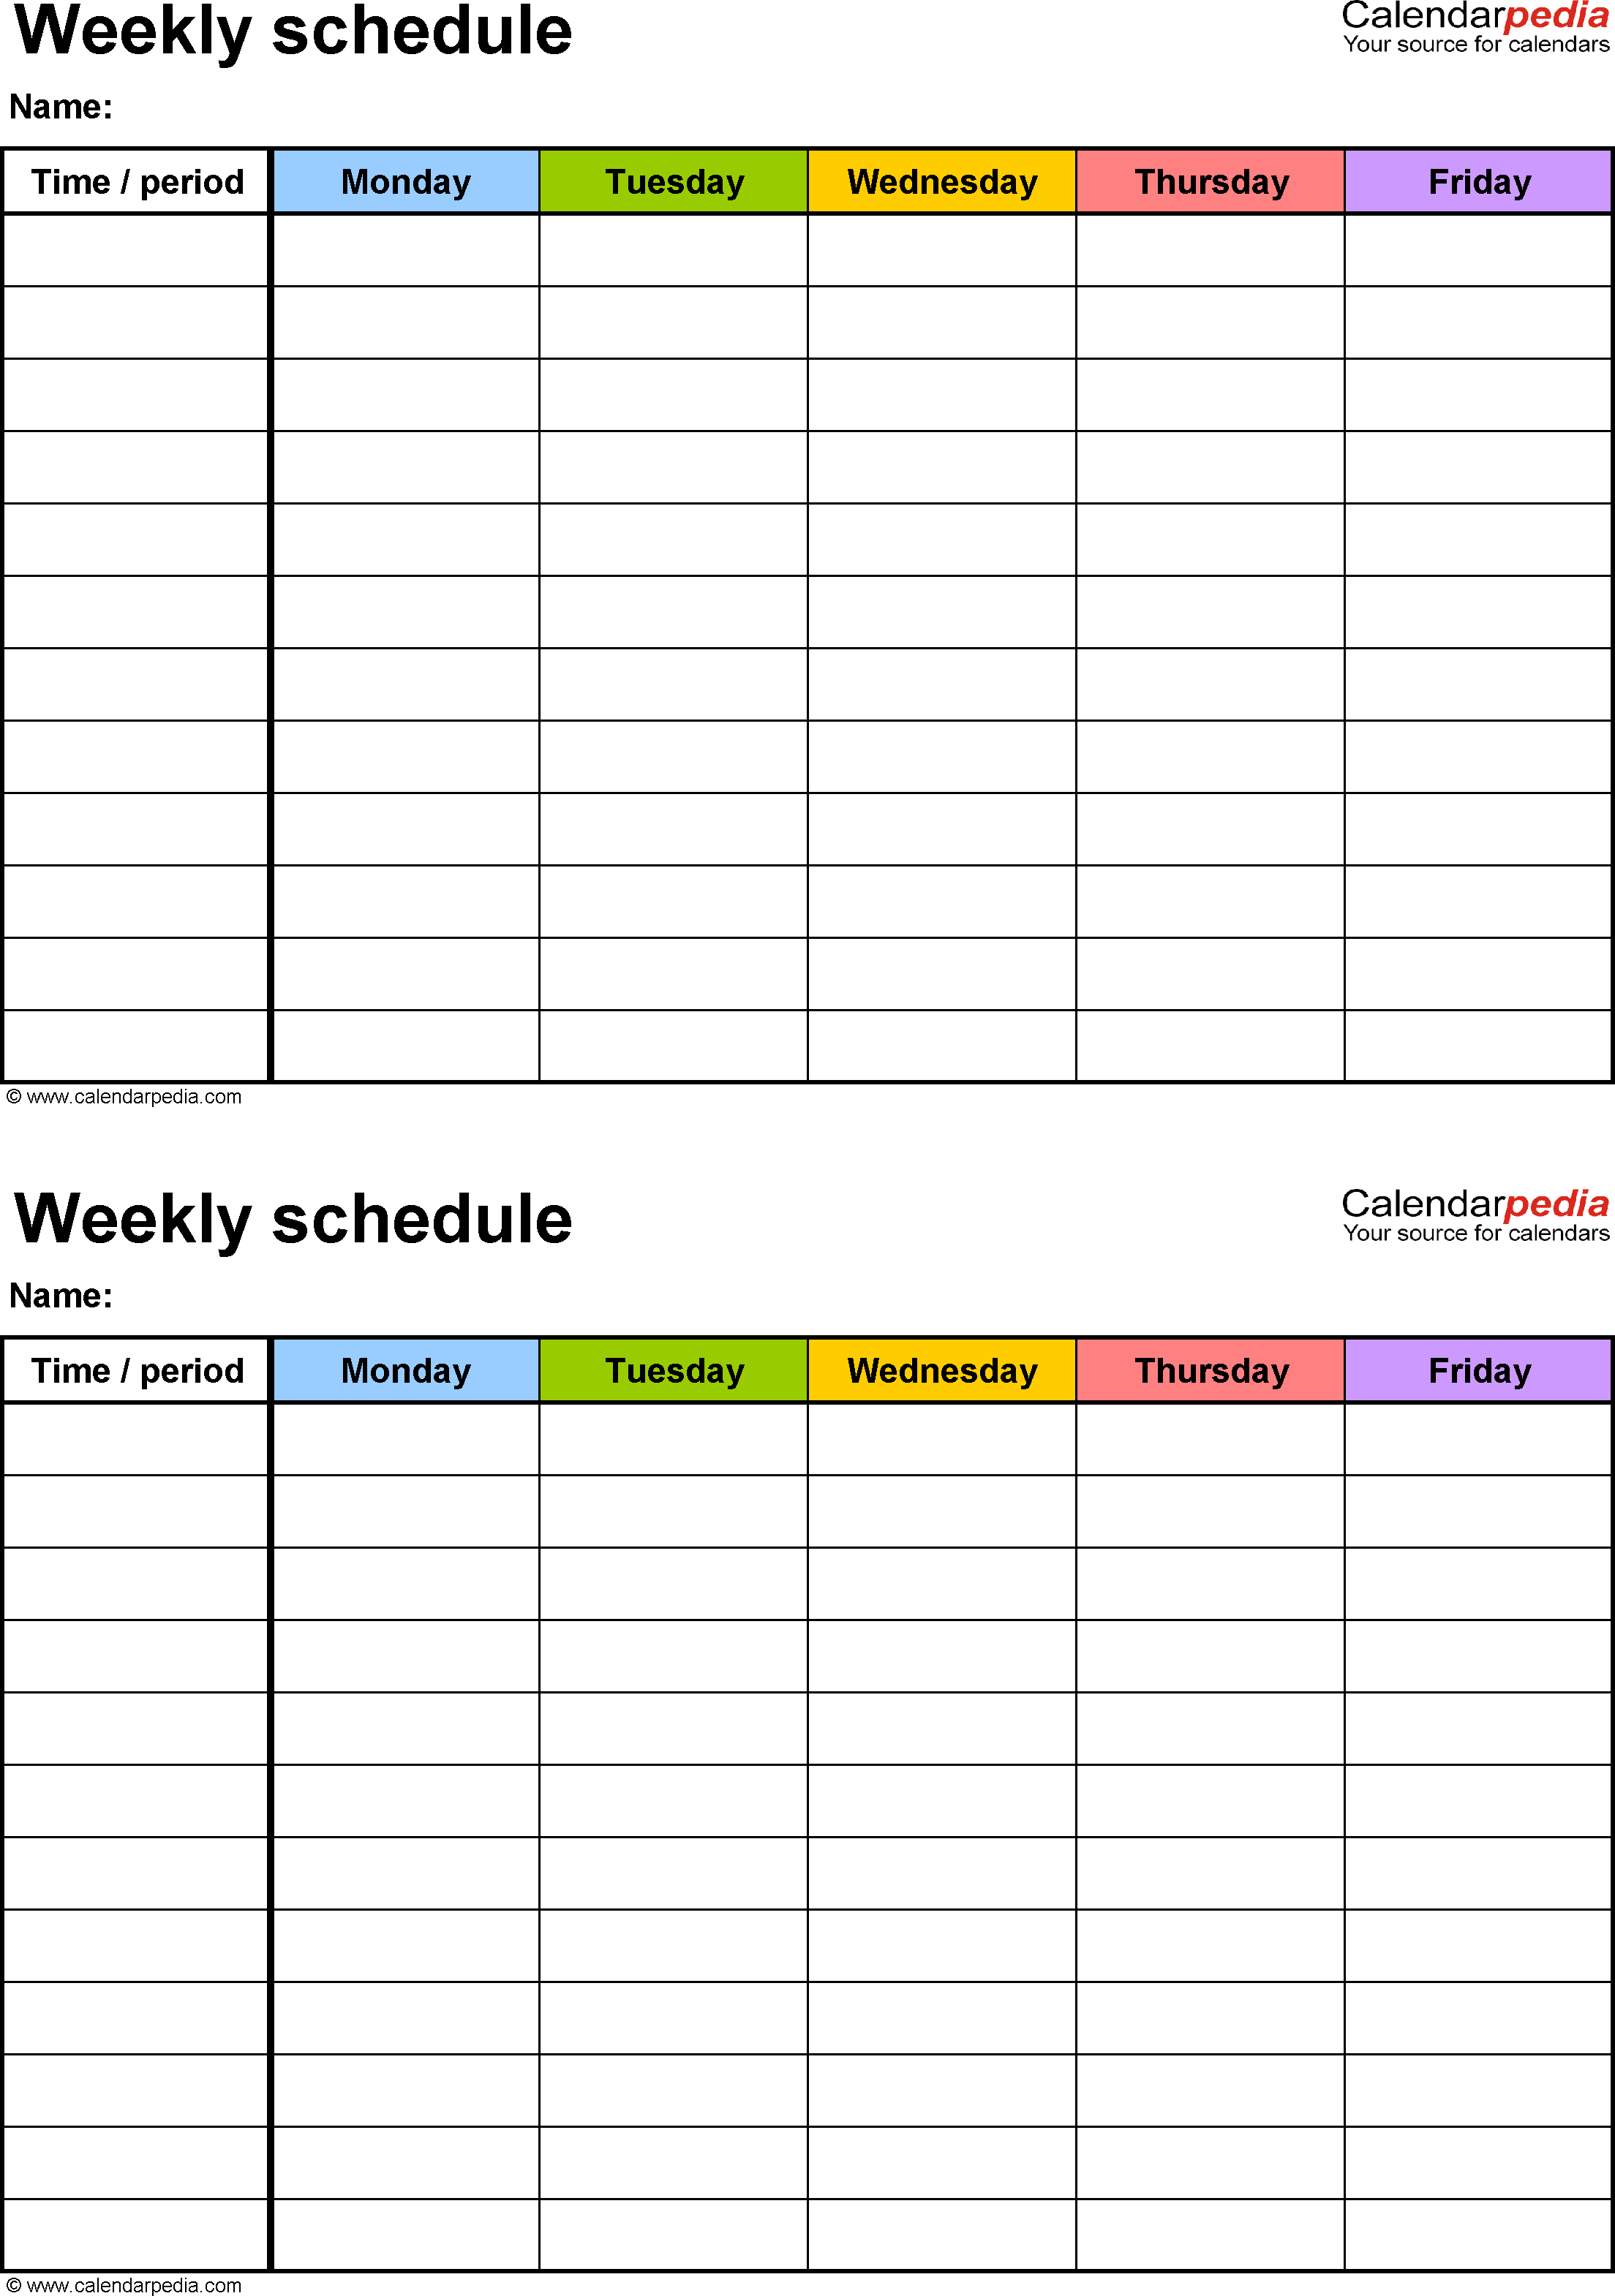 weekly schedule template pdf thebridgesummit.co